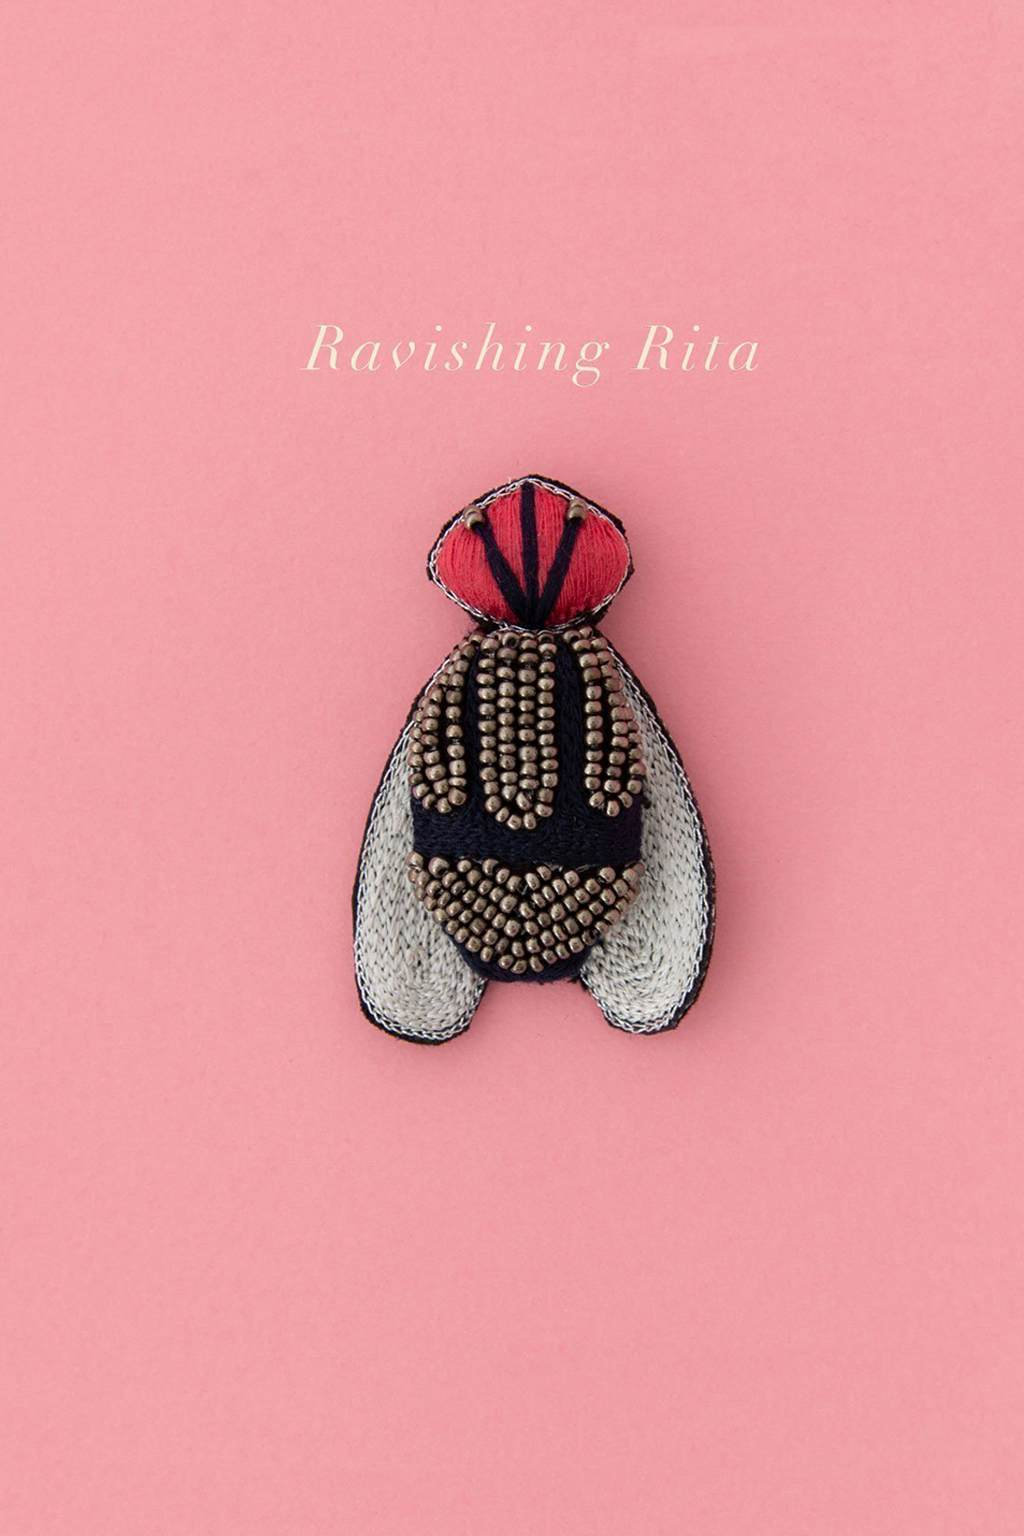 Ruby Olive-Delicate Brooch - Ravishing Rita-Mott and Mulberry